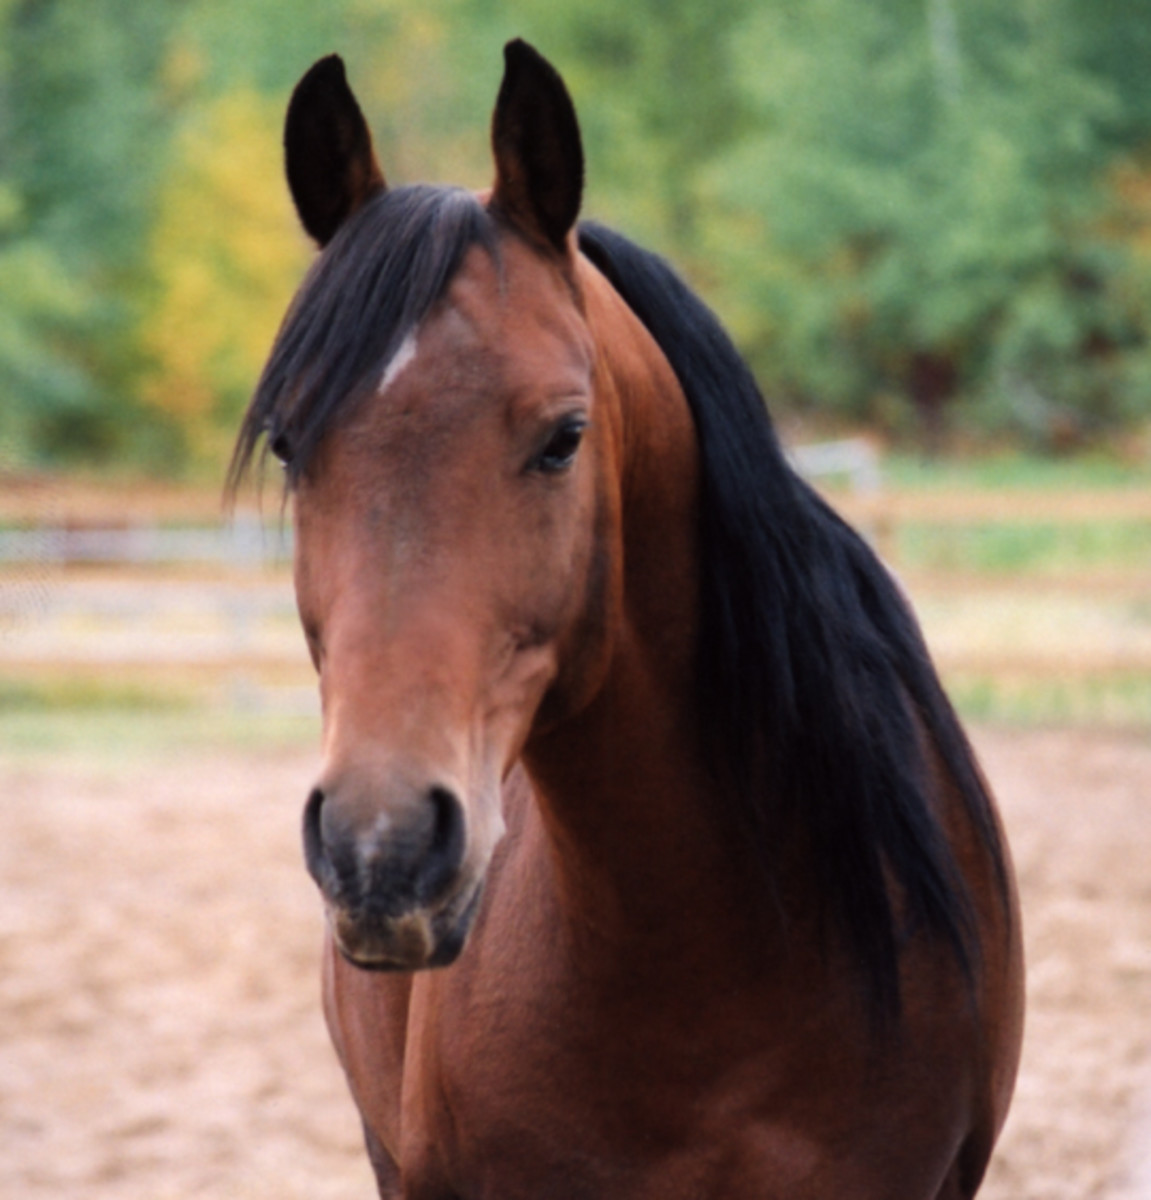 Brown horse with a black mane.